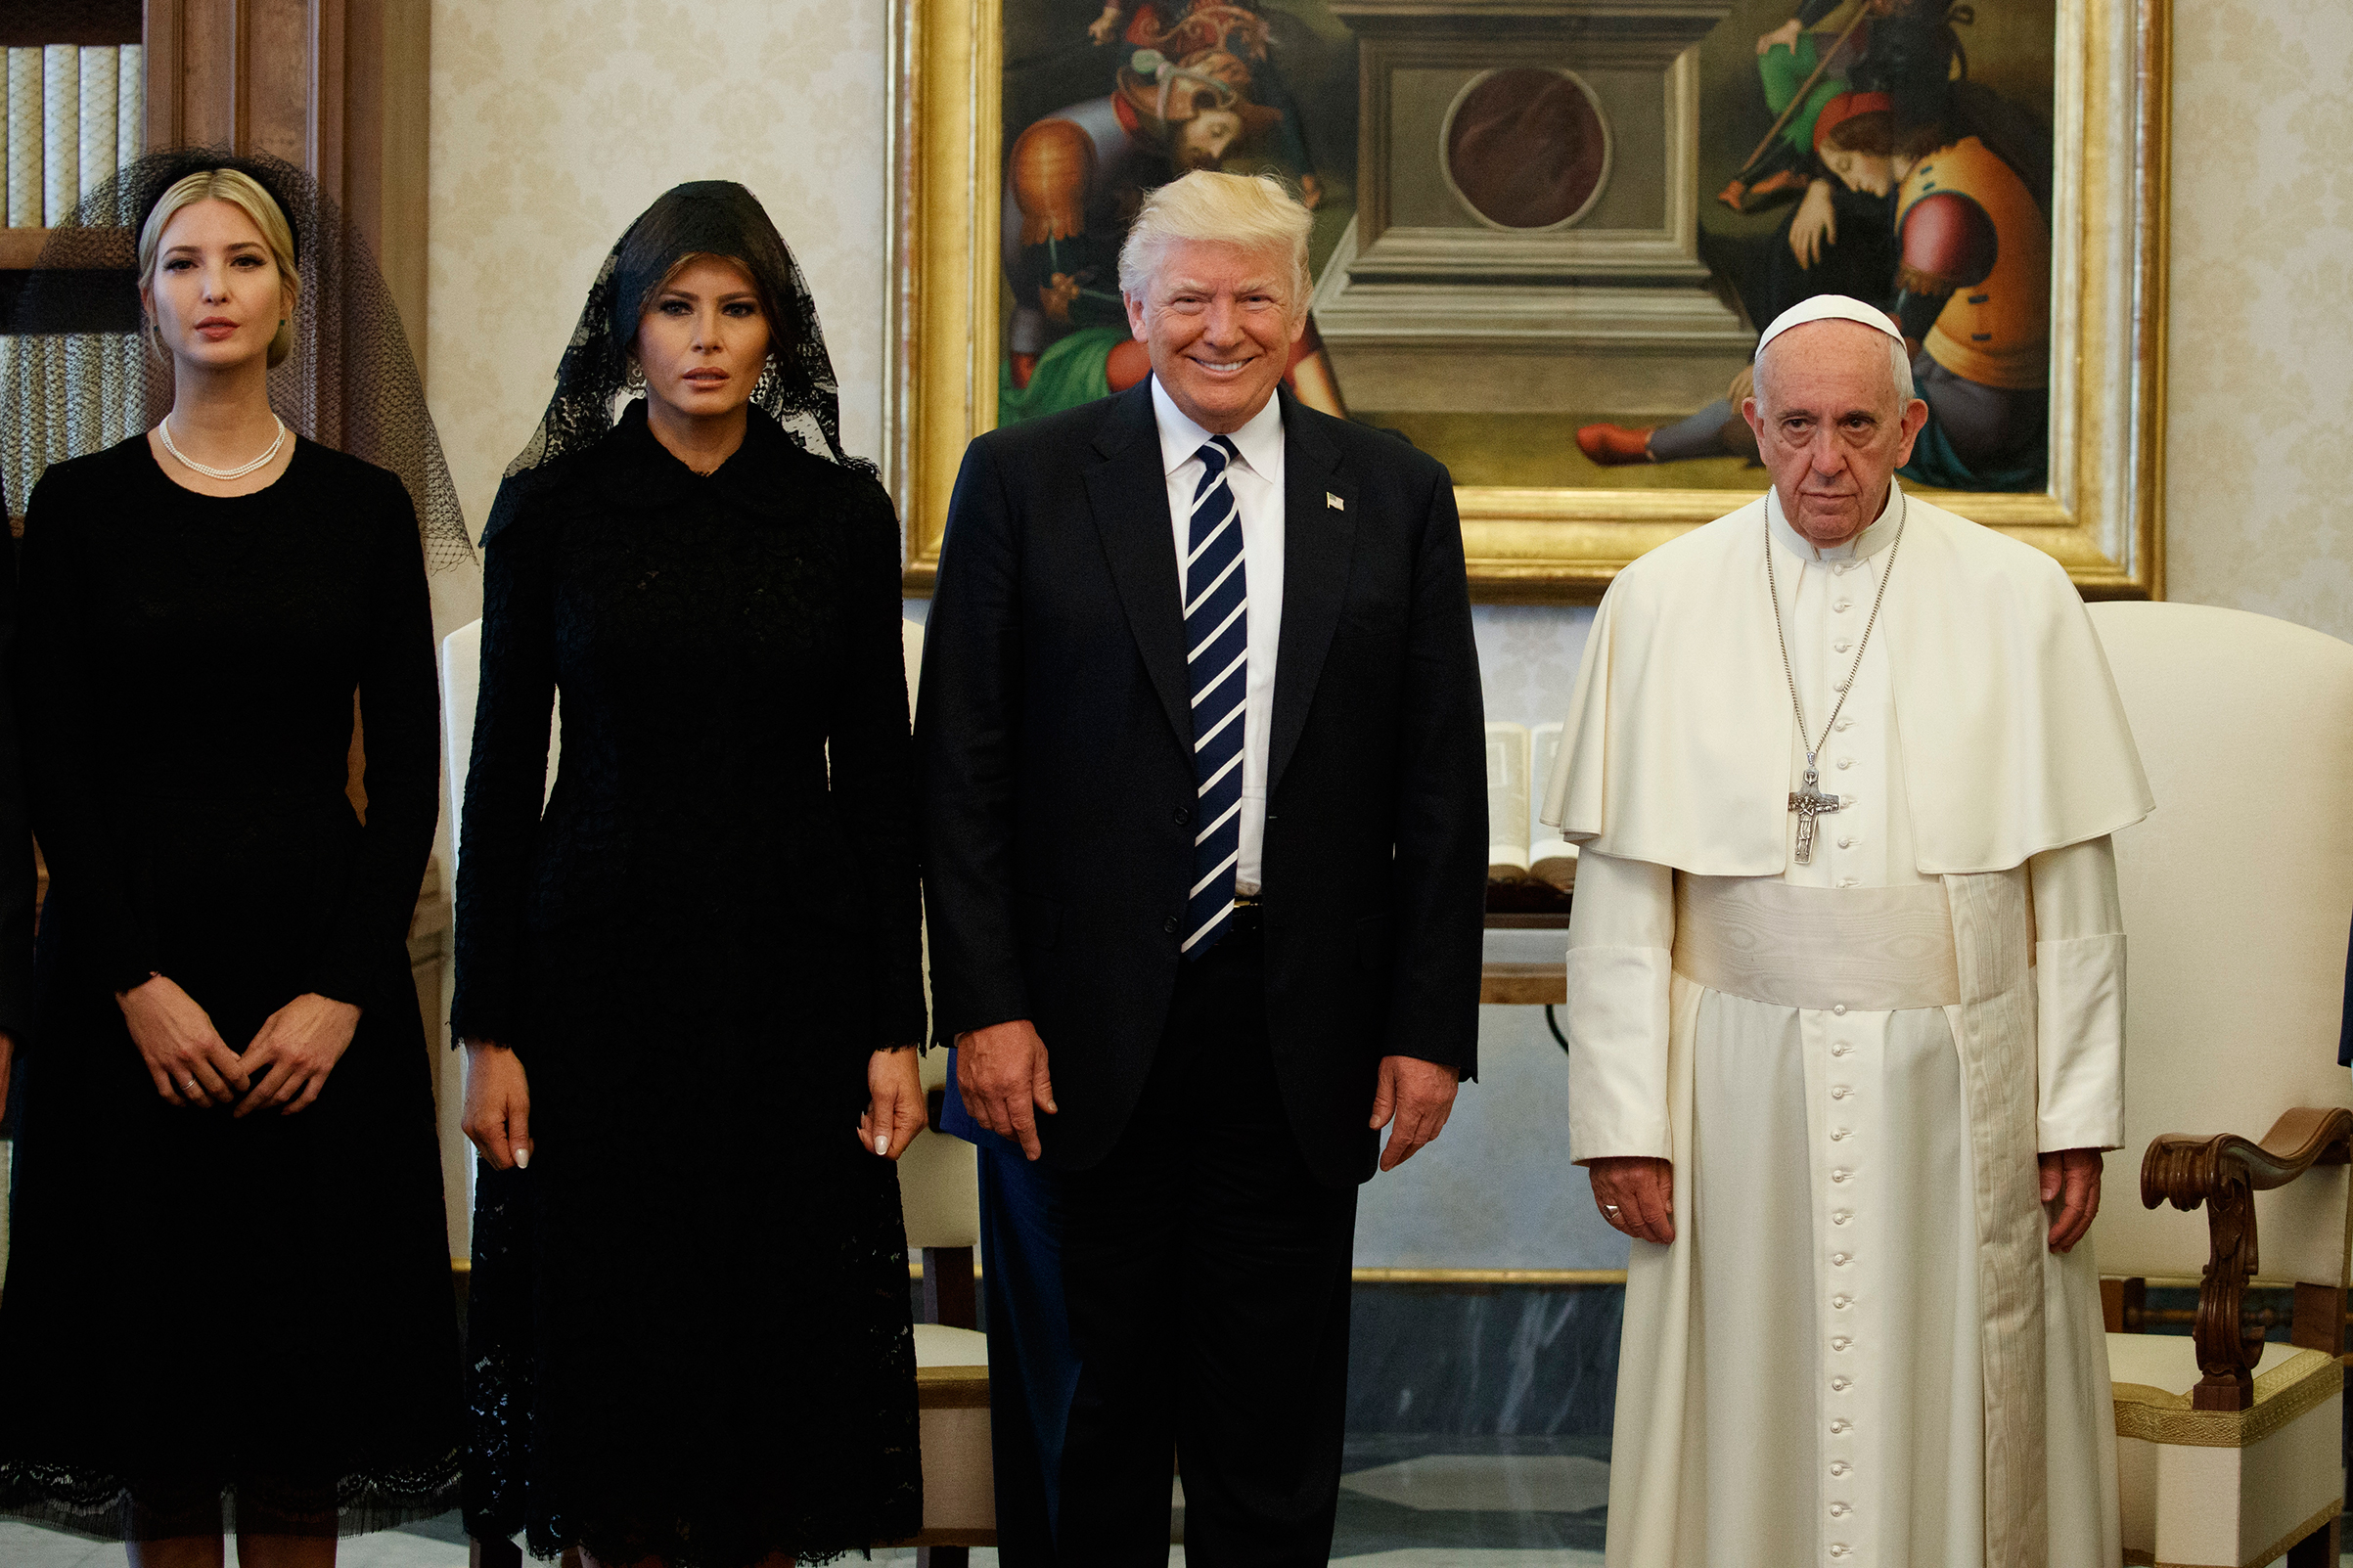 Ivanka Trump, First Lady Melania Trump, and President Donald Trump stand with Pope Francis during a meeting at the Vatican on May 24, 2017.